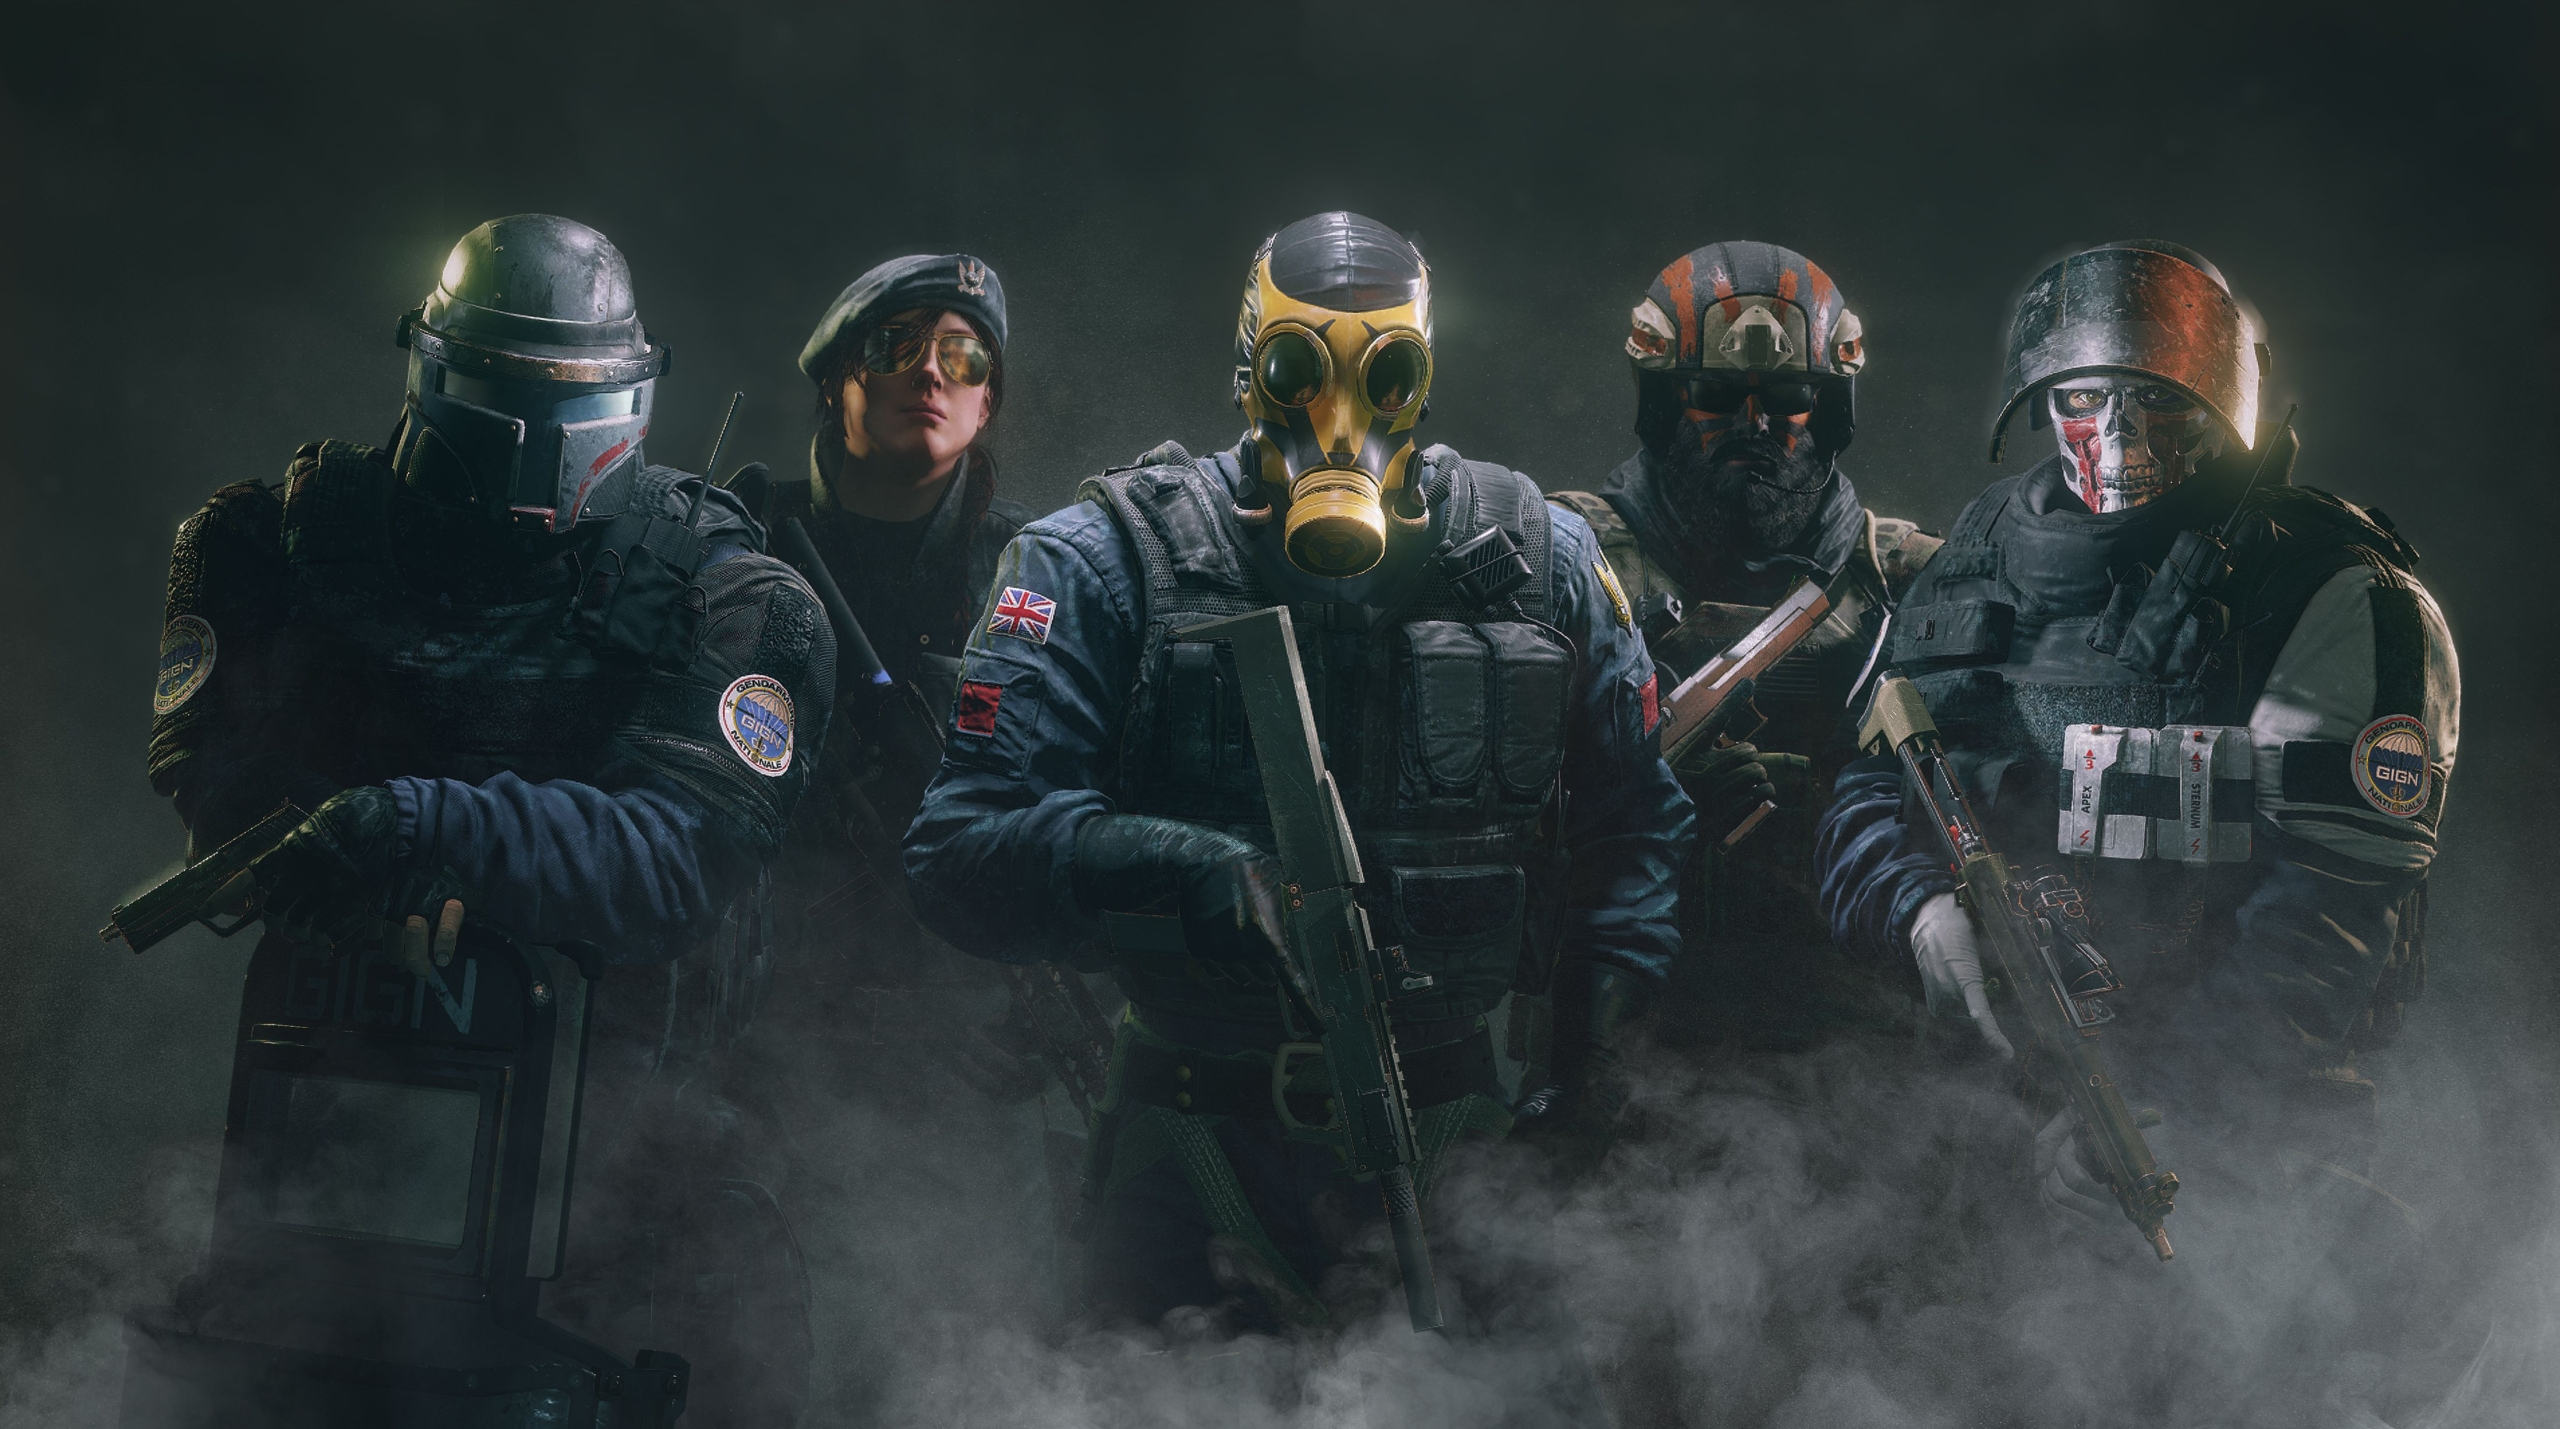 Rainbow Six Siege Wallpaper Pictures – A Great Choice For Your Gaming Desktop